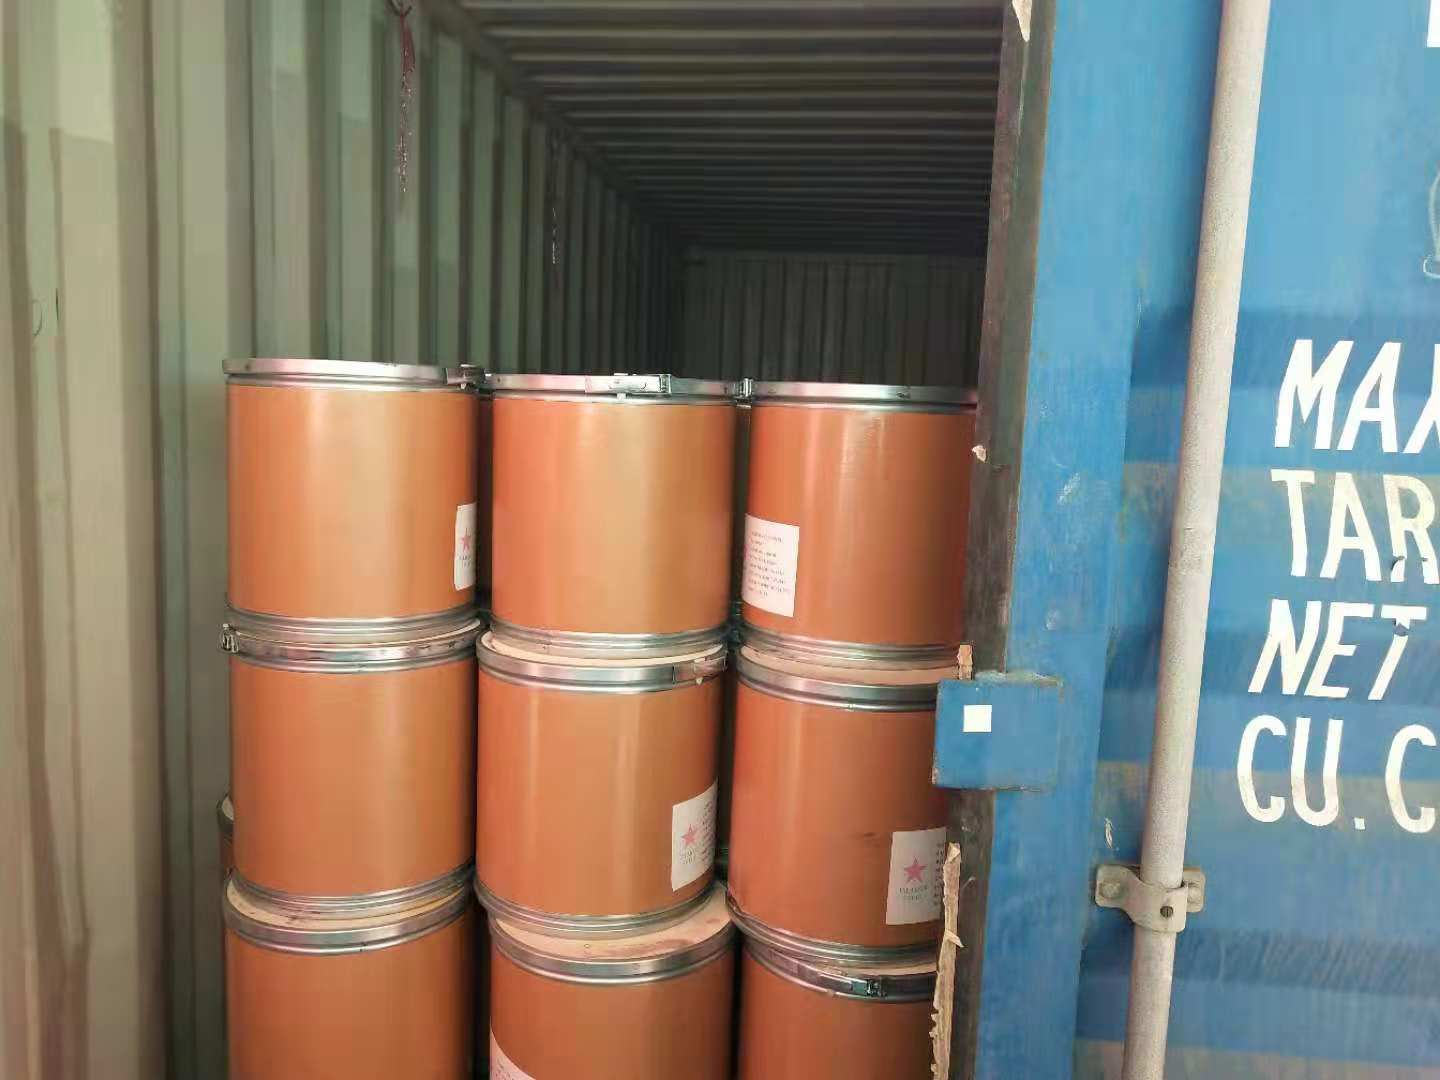 Amoxycillin Trihydrate Compacted USP EP 61336-70-7